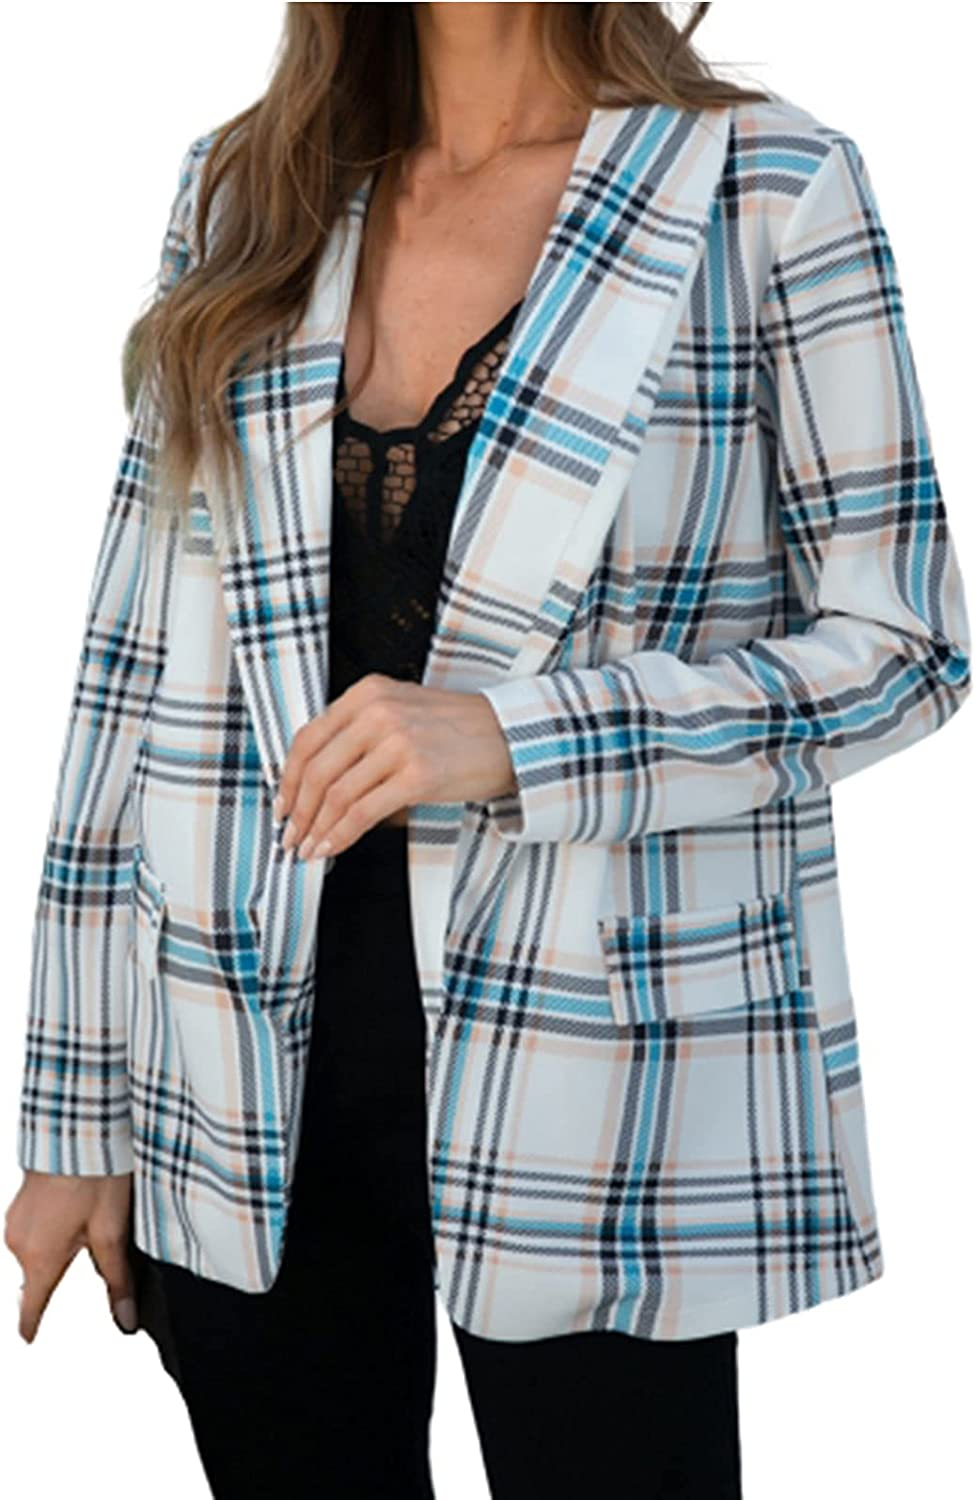 Women's Jackets Casual Fashion Autumn And Winter Street Long Sleeve Plaid Turn-down Collar Suit Coat